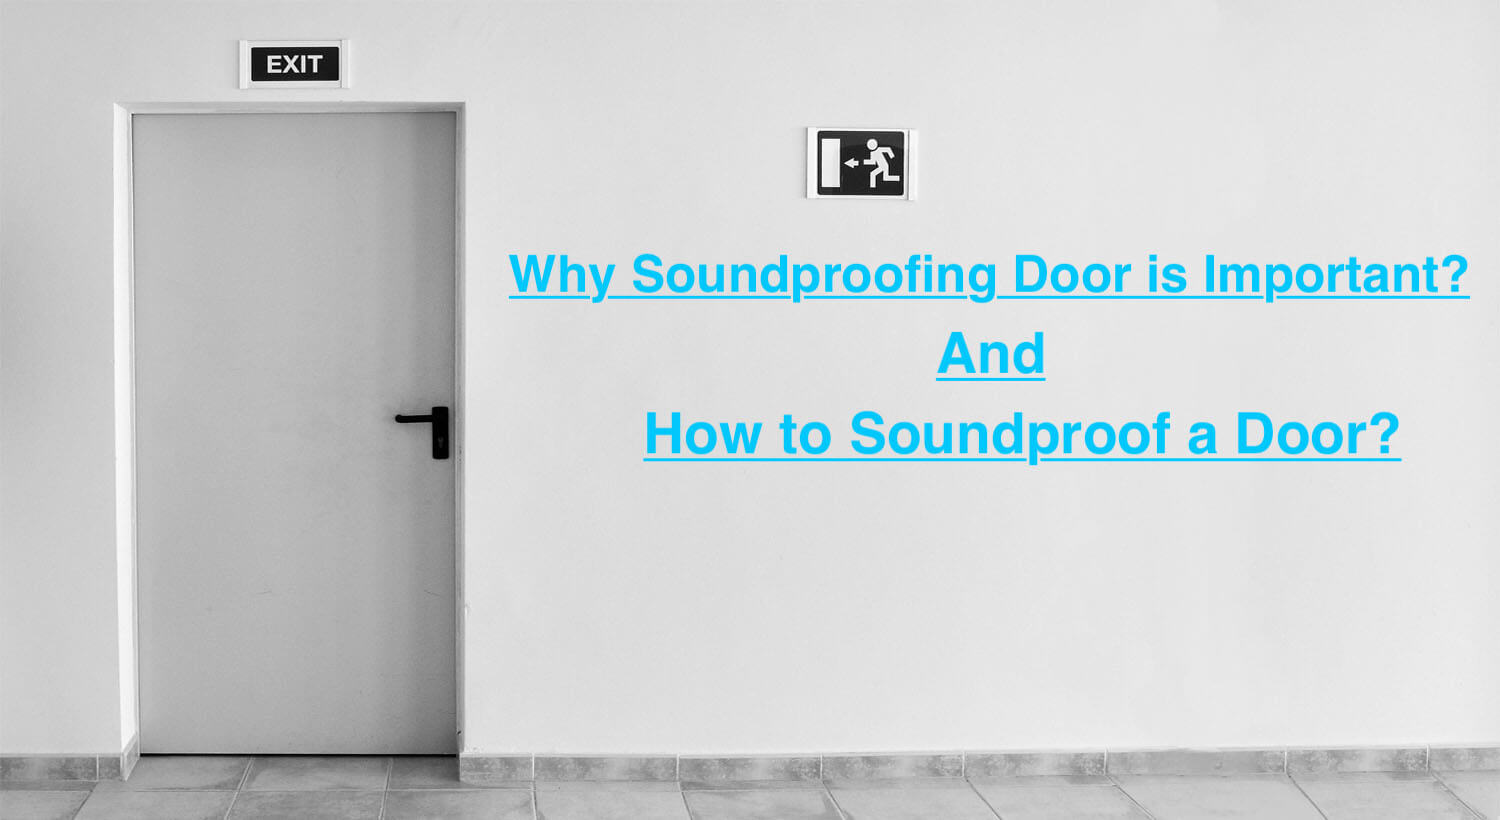 Why Soundproofing Door is Important and How to Soundproof the Door